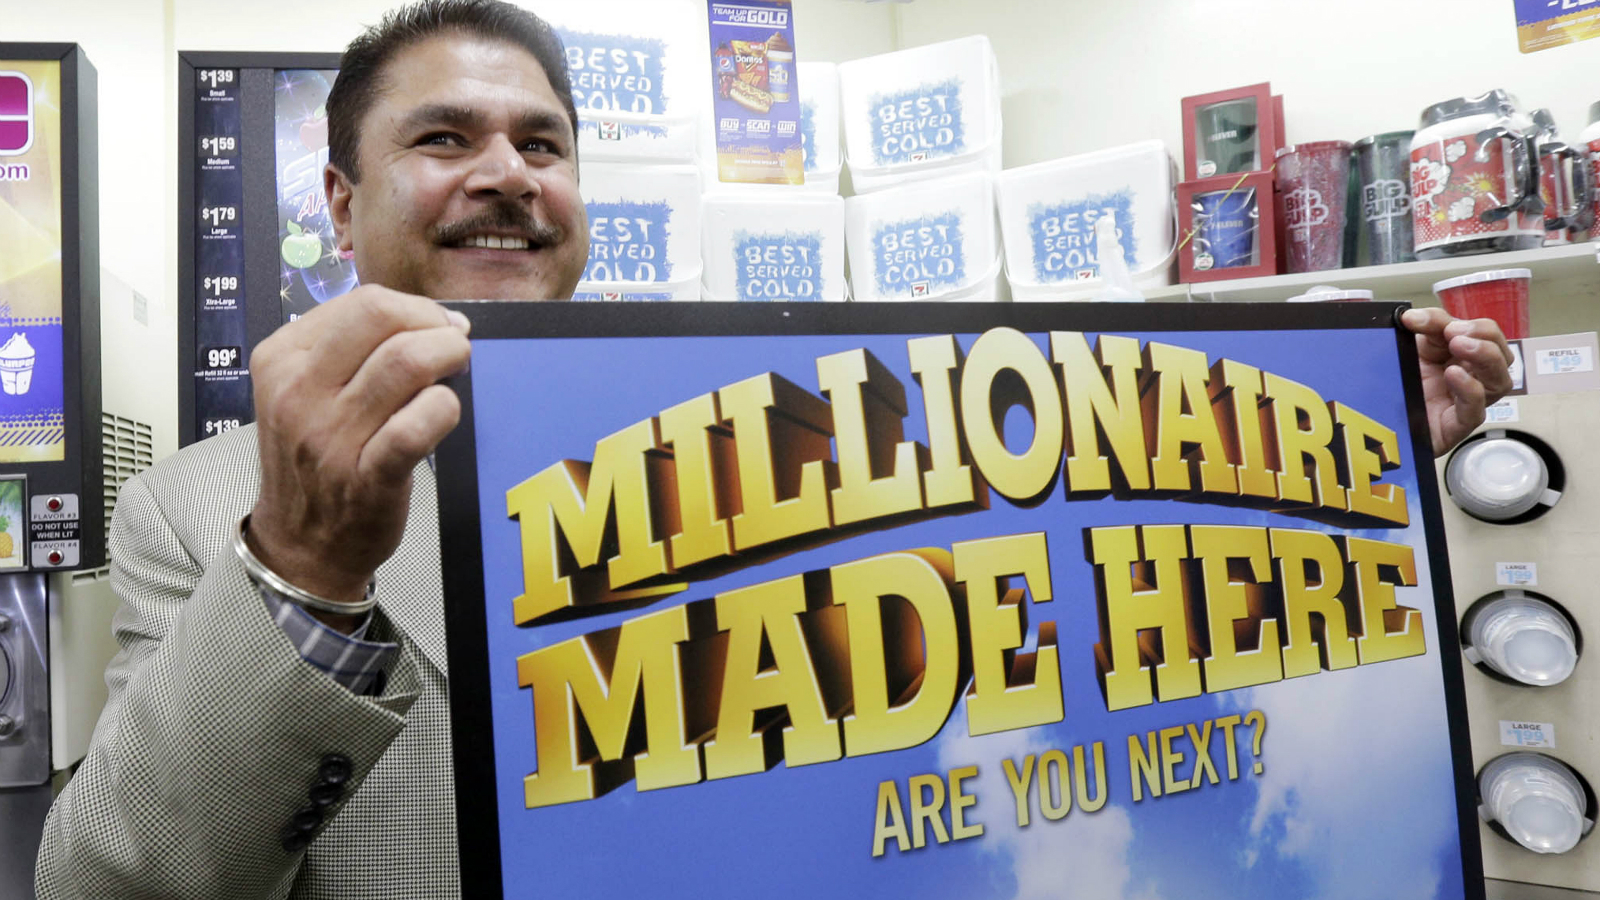 Balbir Atwal, the owner of a 7-Eleven store that sold a winning Powerball lottery ticket, holds up a Millionaire Made Here, sign at his store in Chino Hills, Calif., Thursday, Jan. 14, 2016. Atwal, says he was at home when a friend called to tell him that someone in Chino Hills had hit the jackpot. Atwal says he didn't know the ticket was purchased at his store until he turned on the TV.